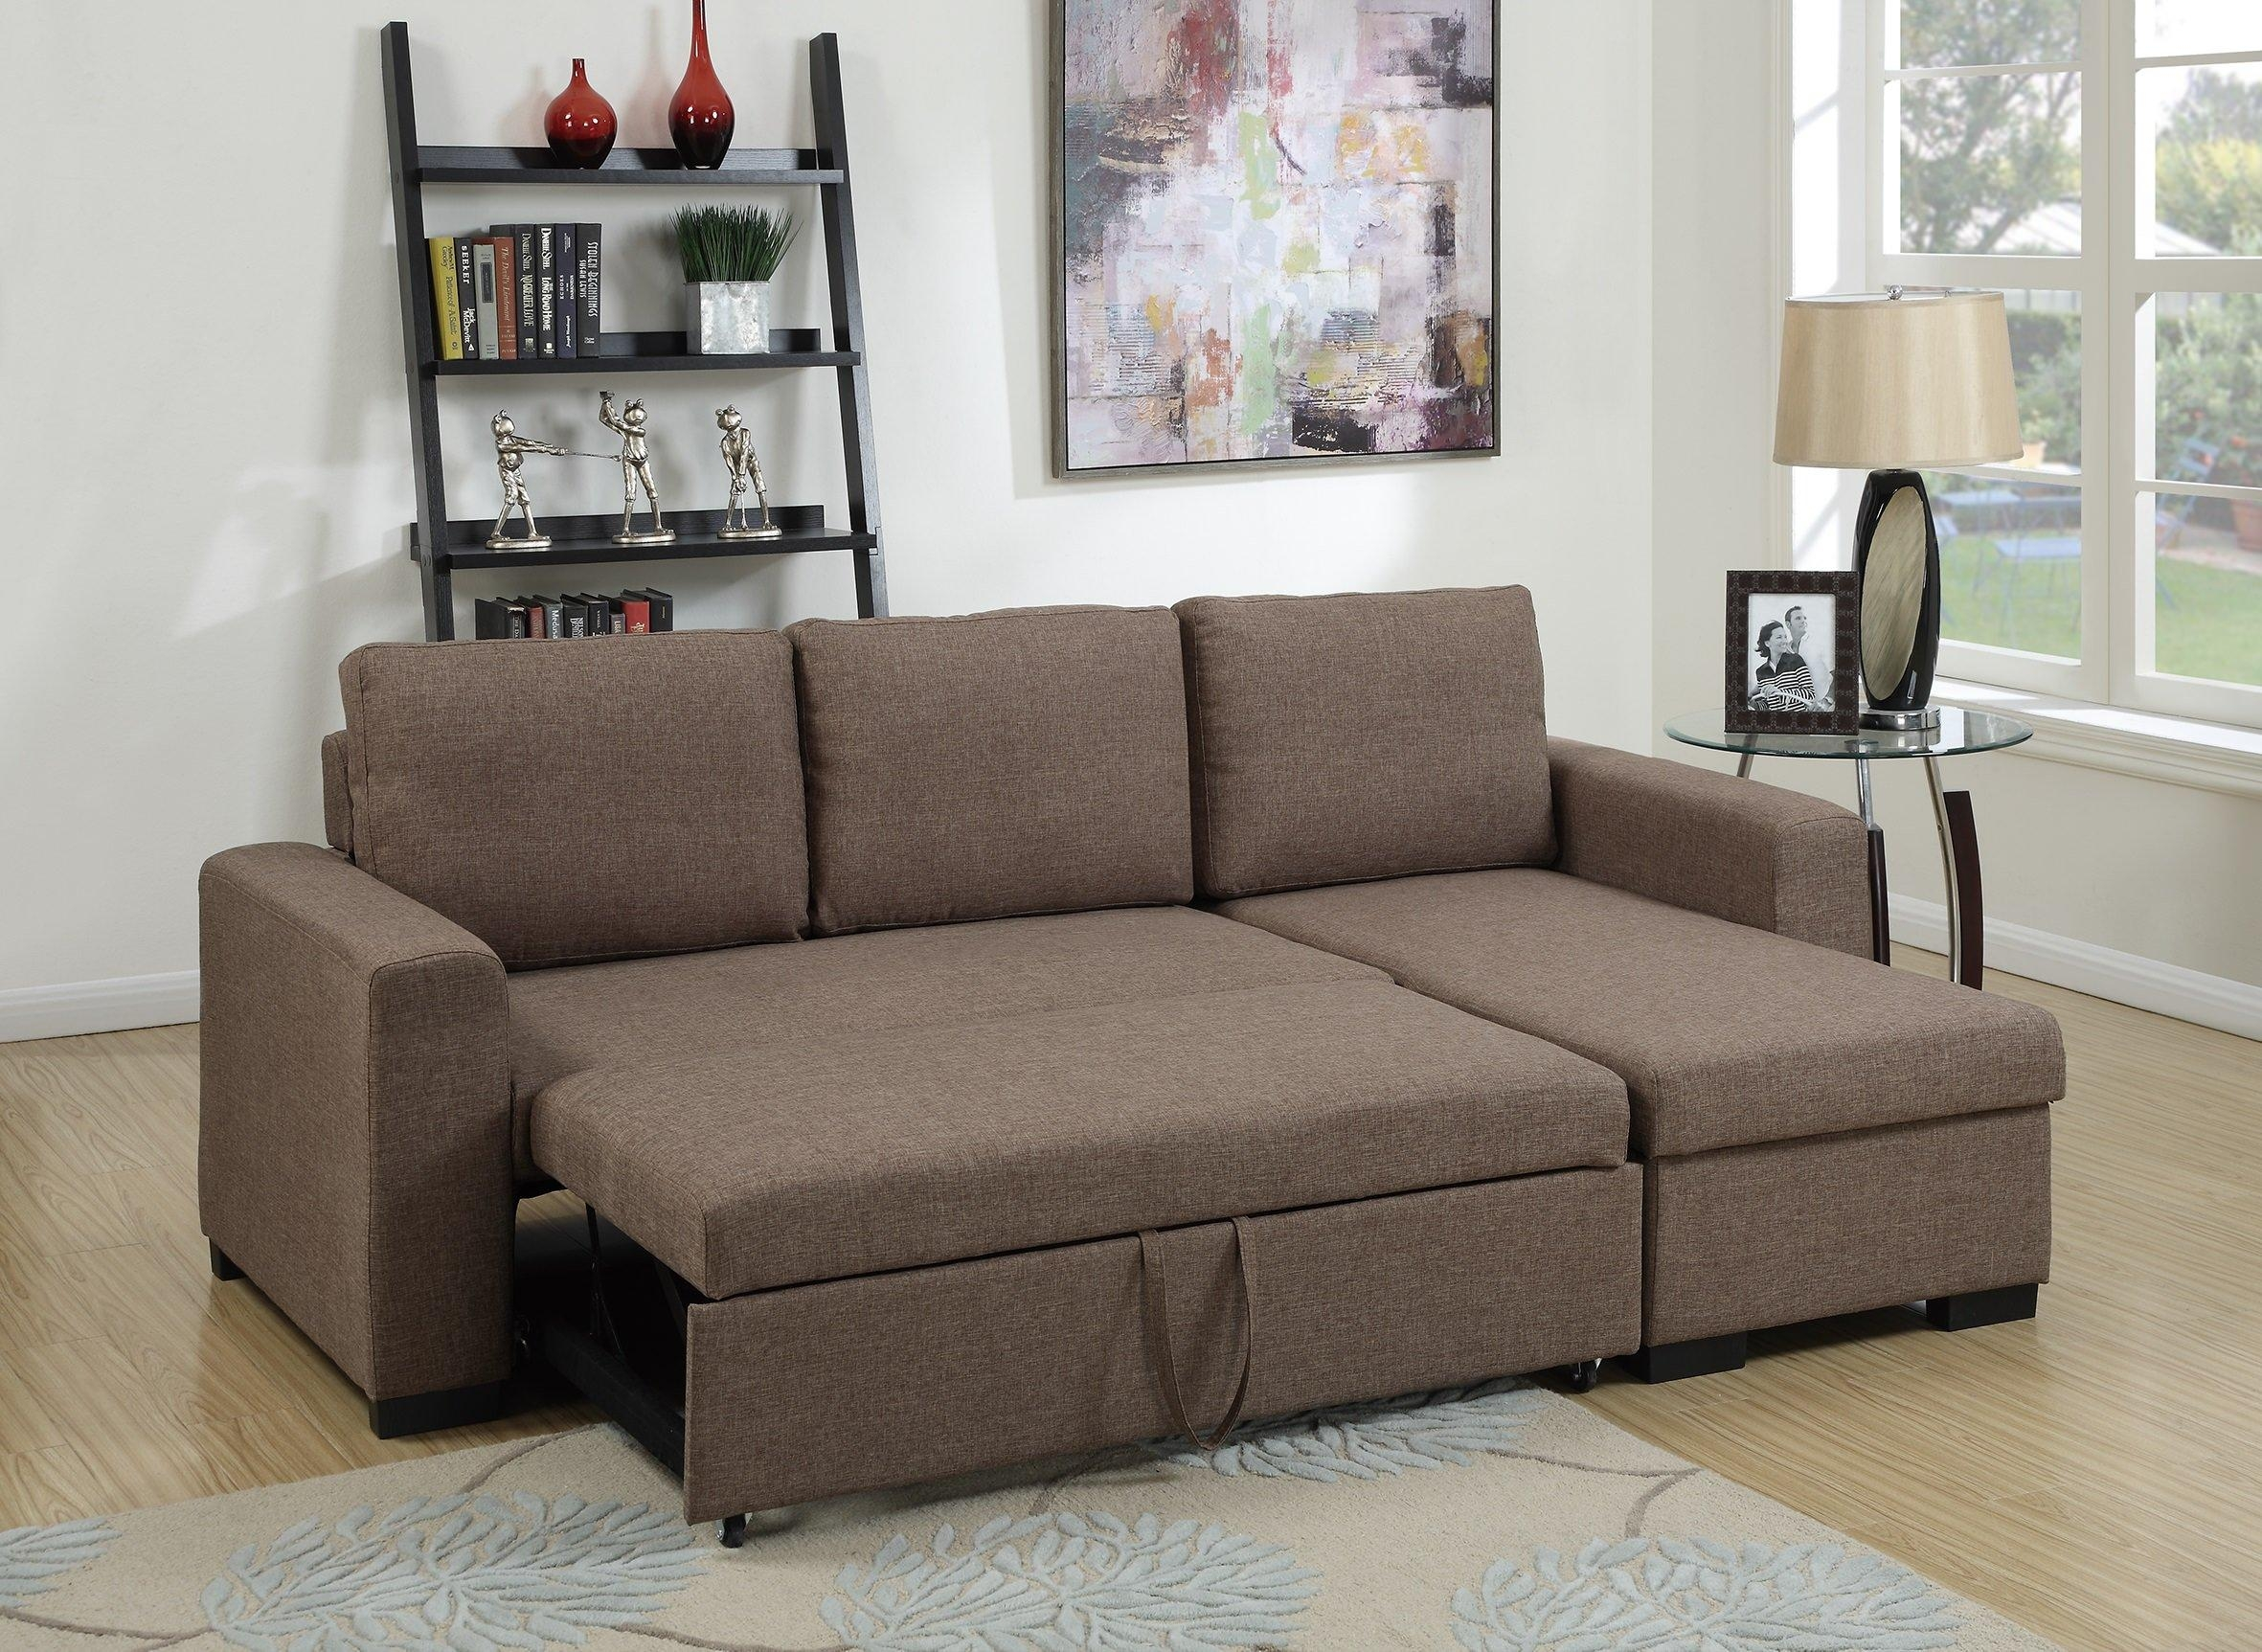 F6932 Light Coffee Convertible Sectional Sofapoundex Intended For Convertible Sectional Sofas (View 4 of 15)